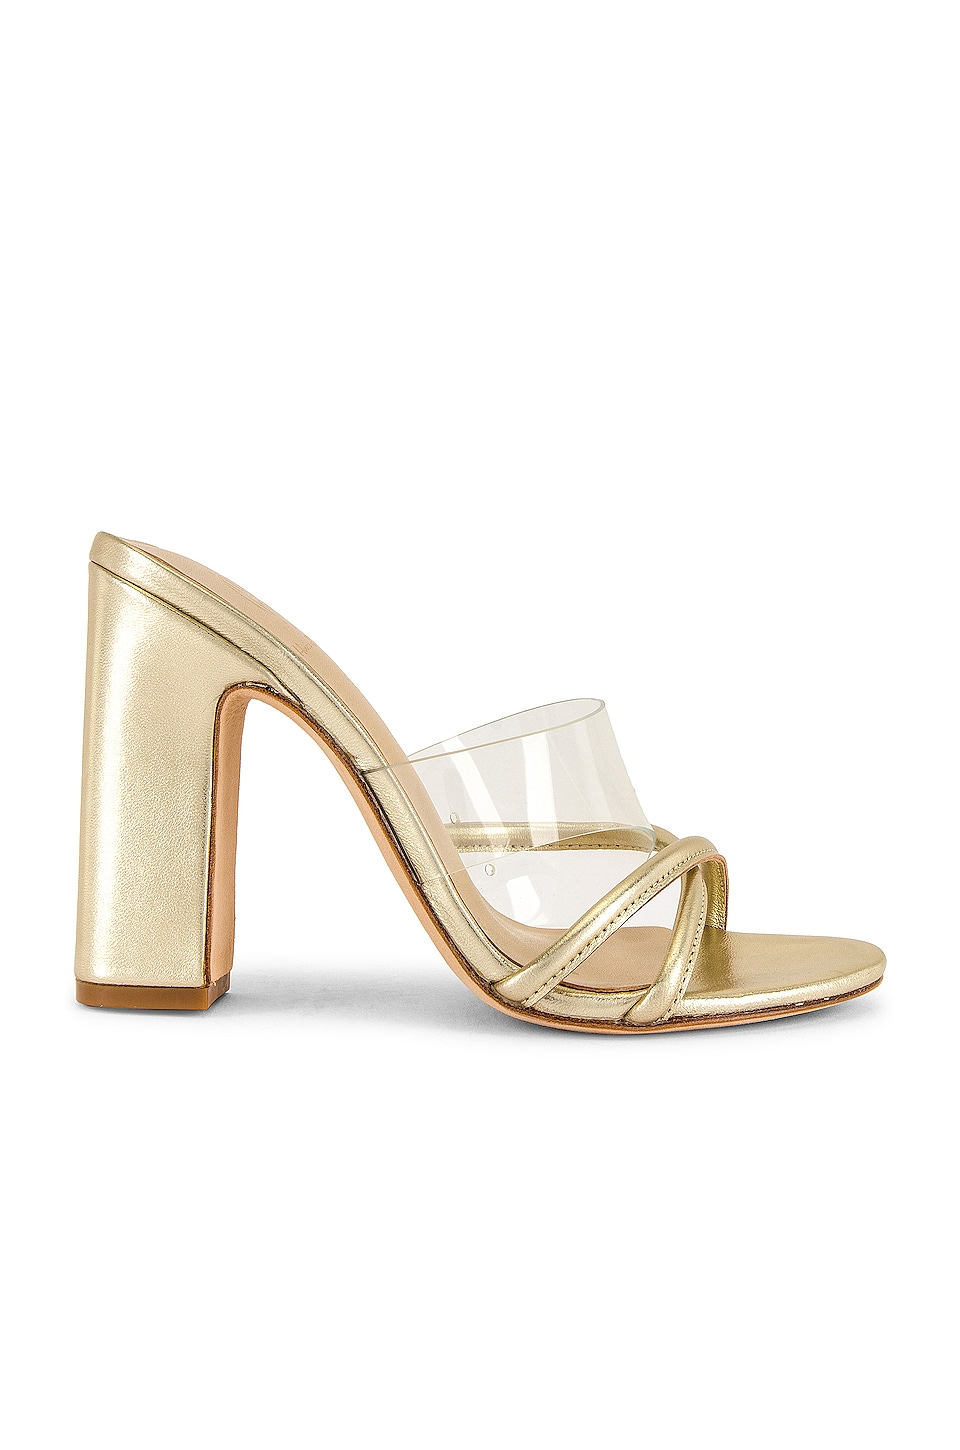 House of Harlow 1960 x REVOLVE Sasha Heel in Pale Gold